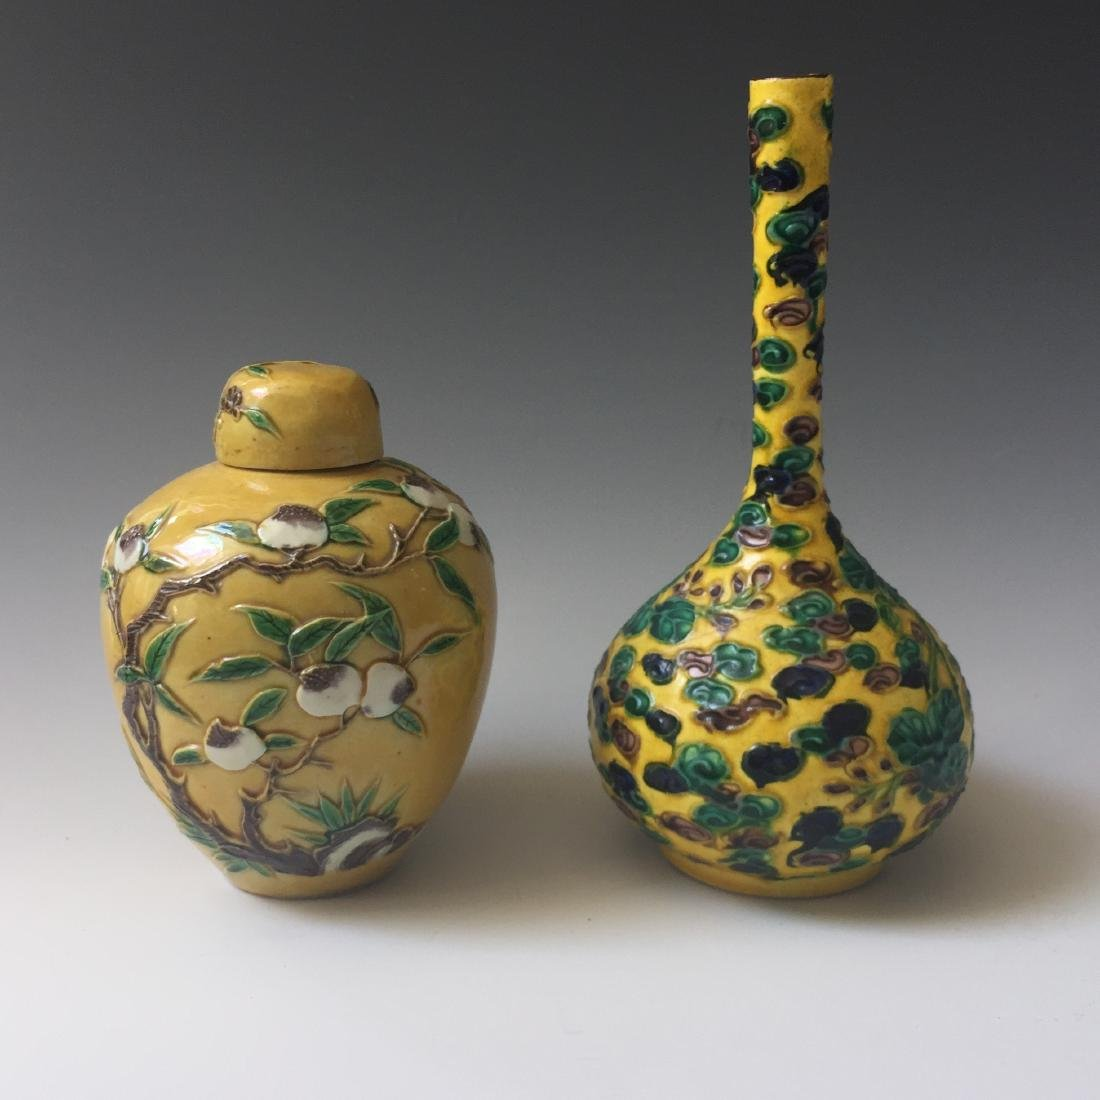 TOW OF CHINESE ANTIQUE POT AND VASE . MARKED